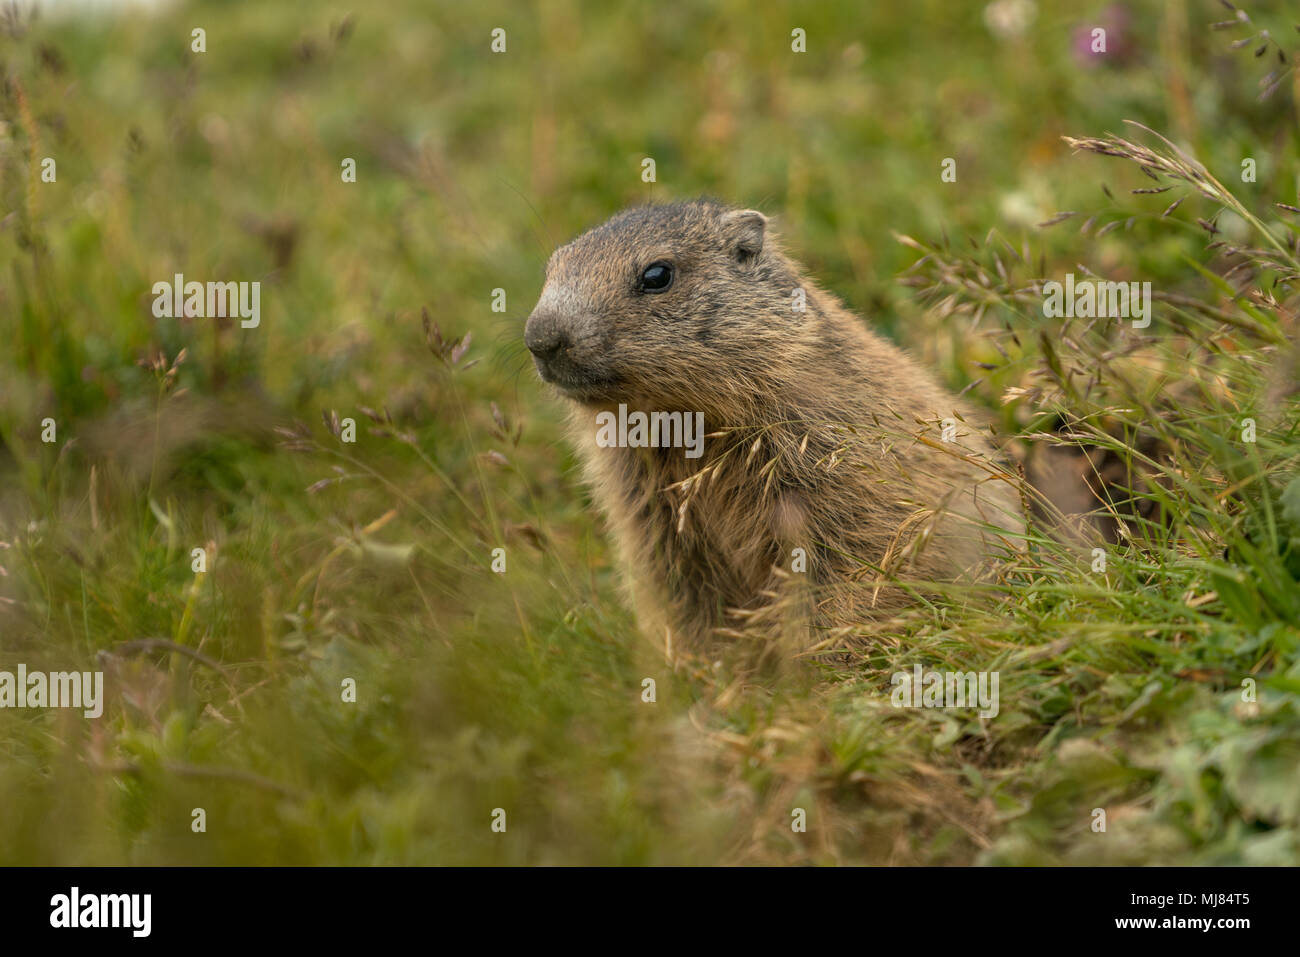 Baby marmot in the grass - Stock Image